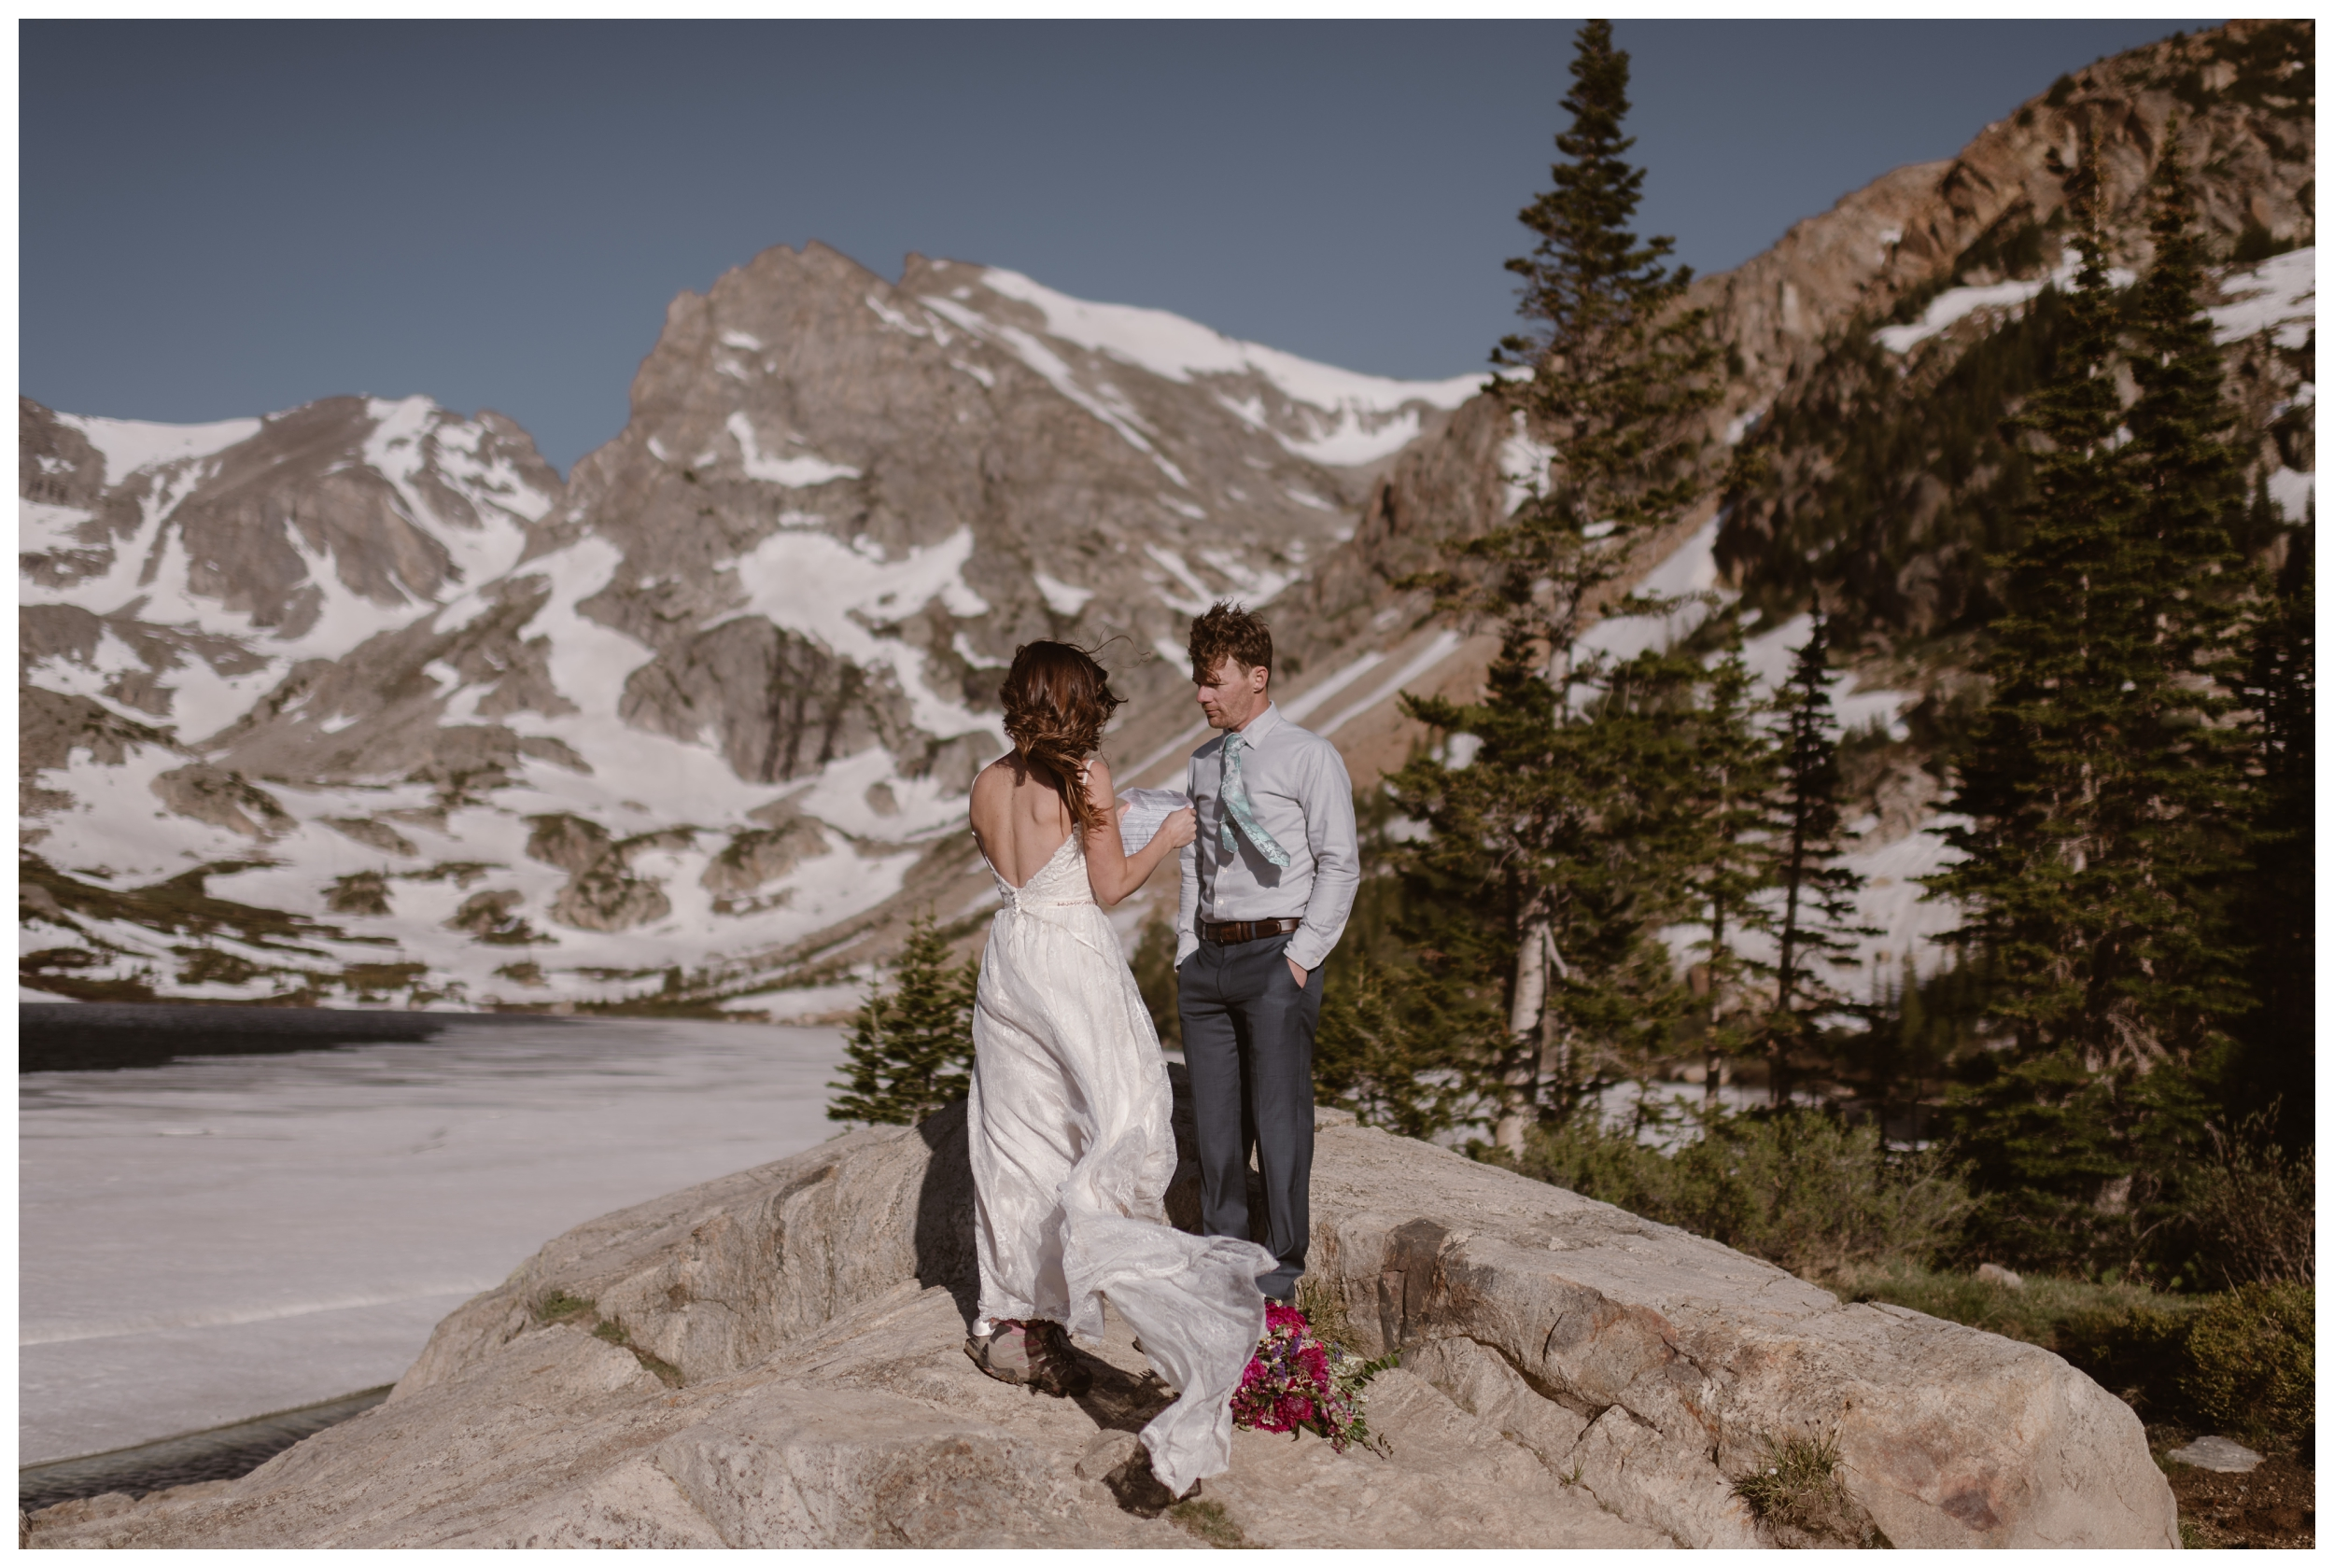 As the high alpine wind blows around them, Karen and Matt read their vows during their adventure elopement ceremony at the top of Lake Isabelle, above Brainard Lake in Nederland, Colorado. Photo by Adventure Instead, Maddie Mae.